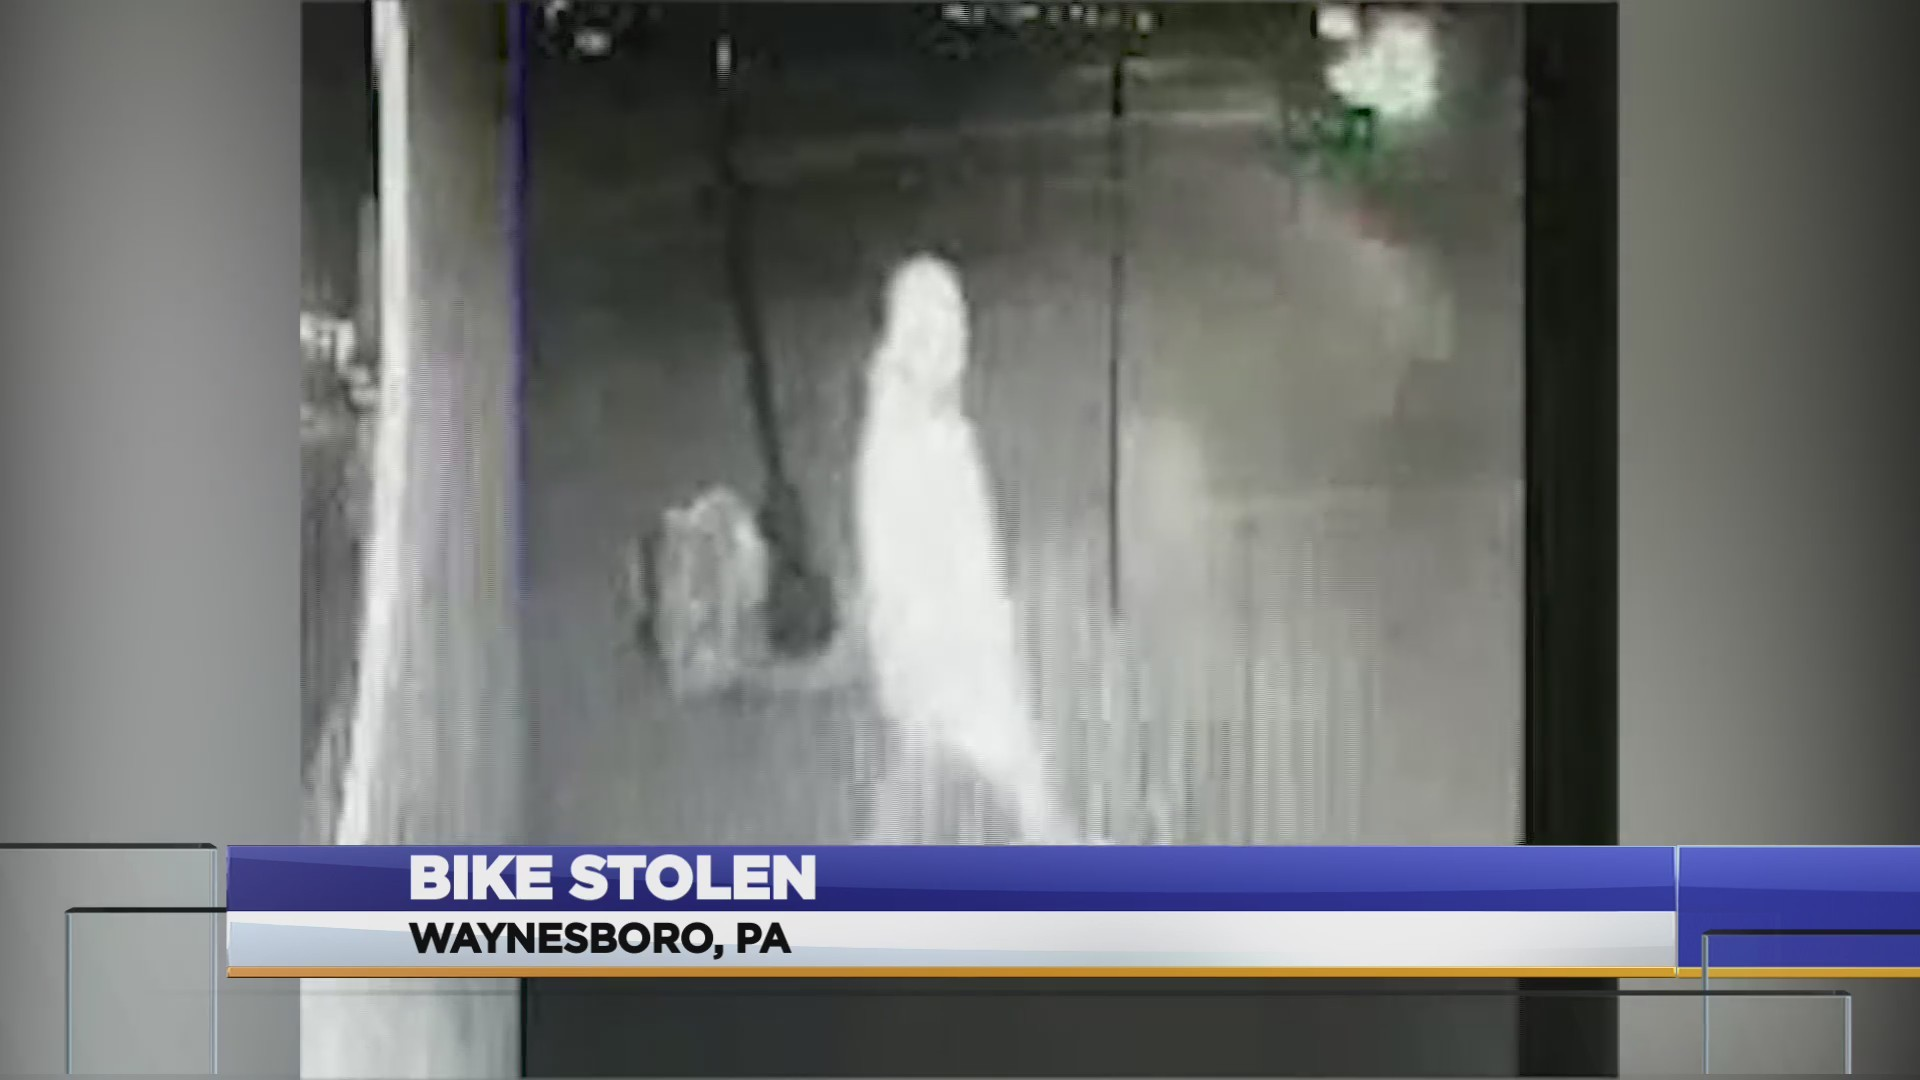 Bike_theft_Waynesboro_0_20190123221932